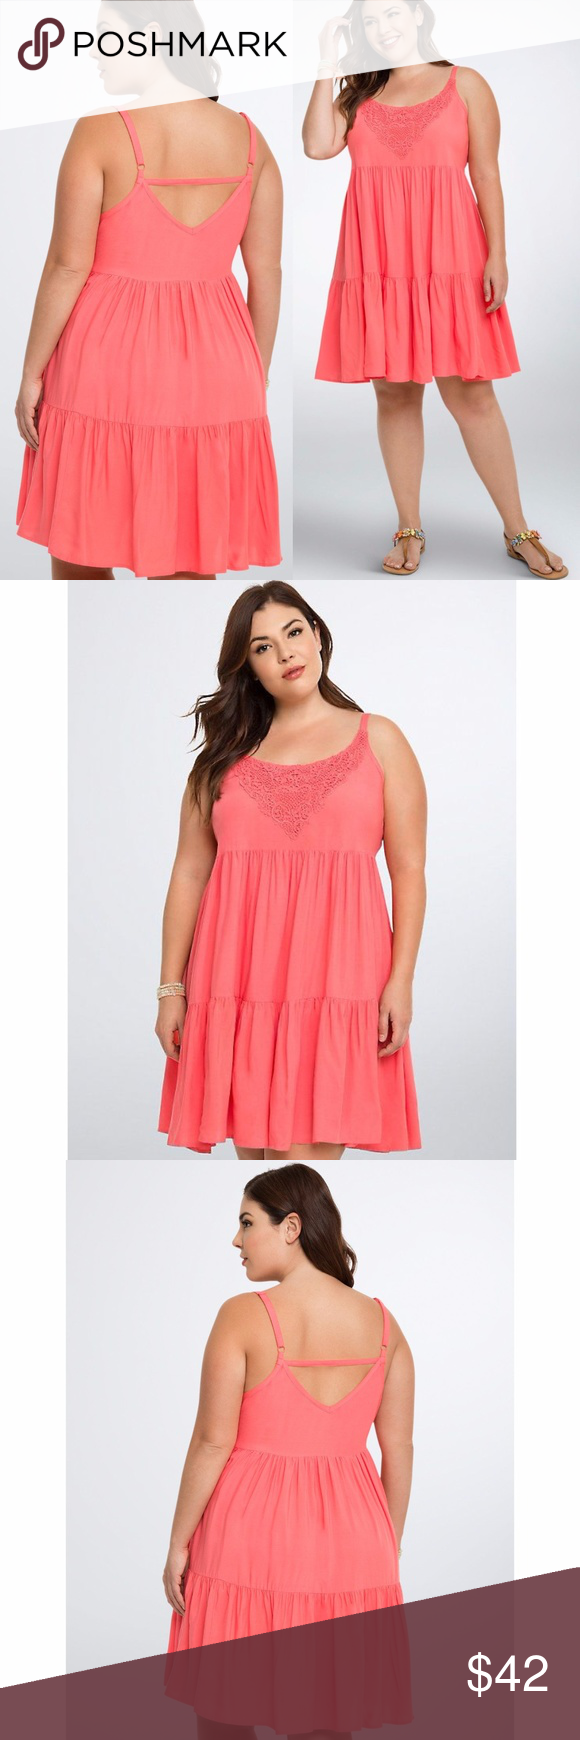 33165f3f015 New TORRID Crochet Inset Tiered Trapeze Dress NWT size 0 (L 12) condition